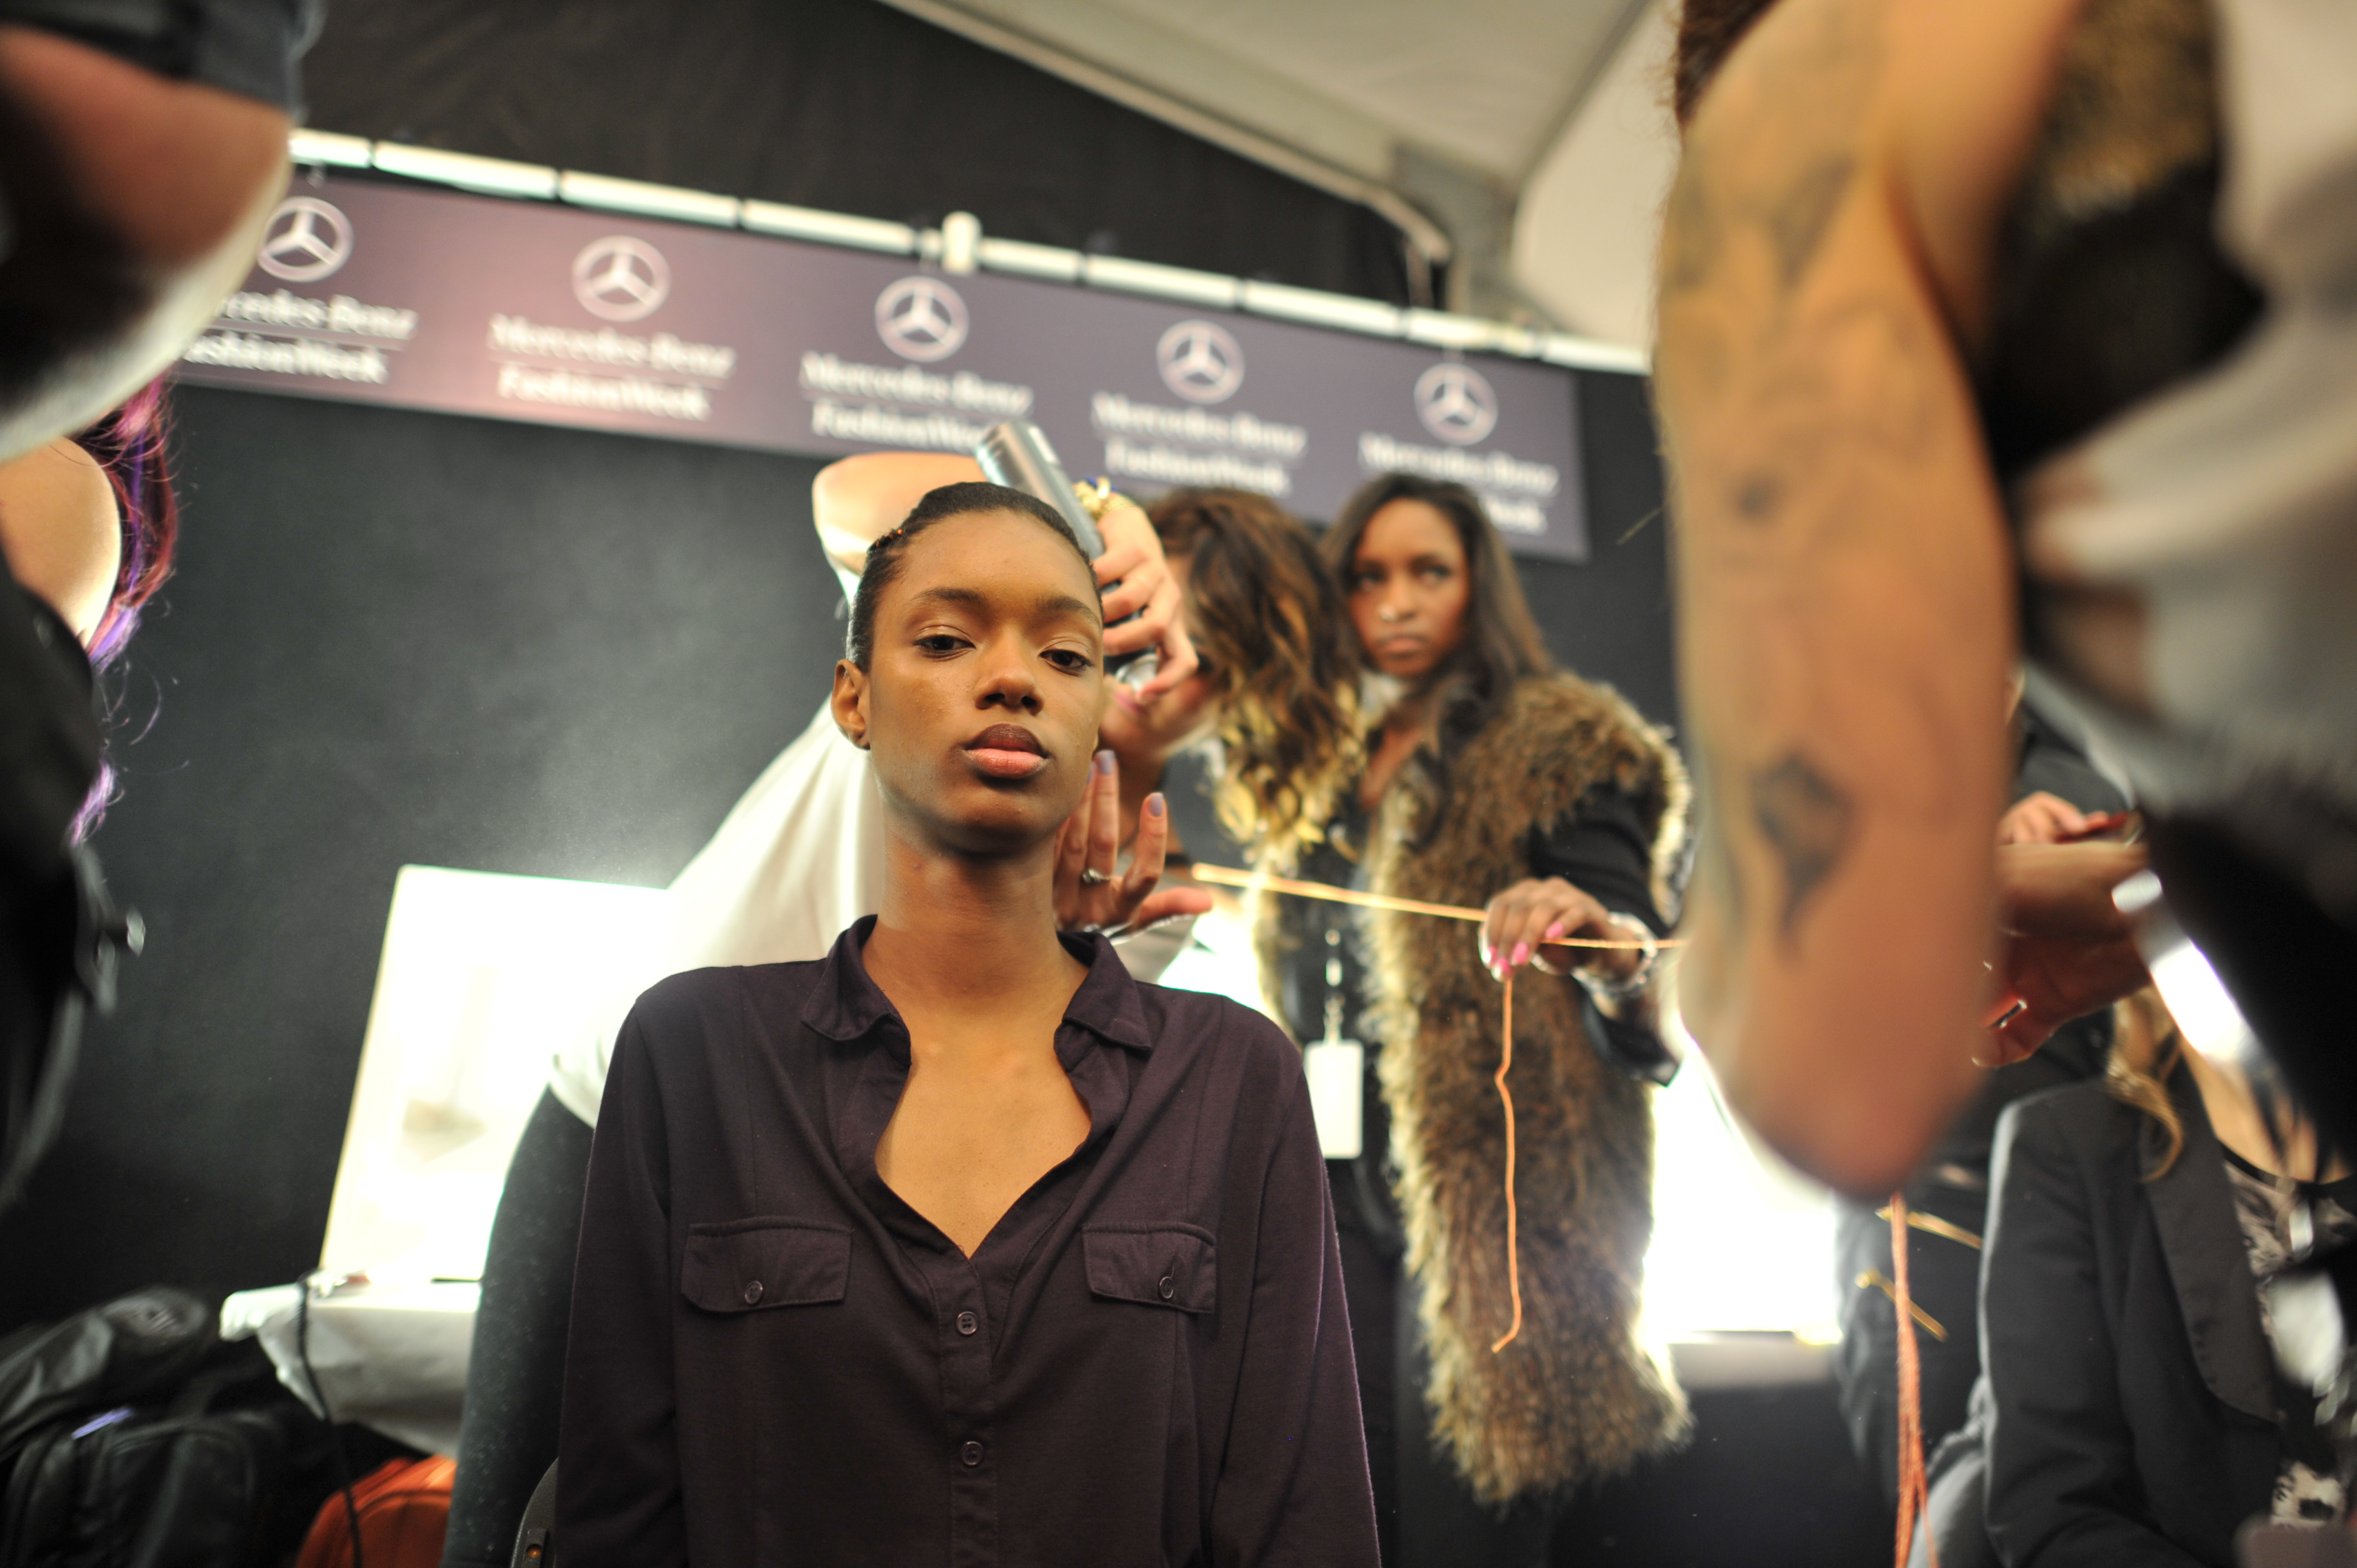 A model getting her hair done